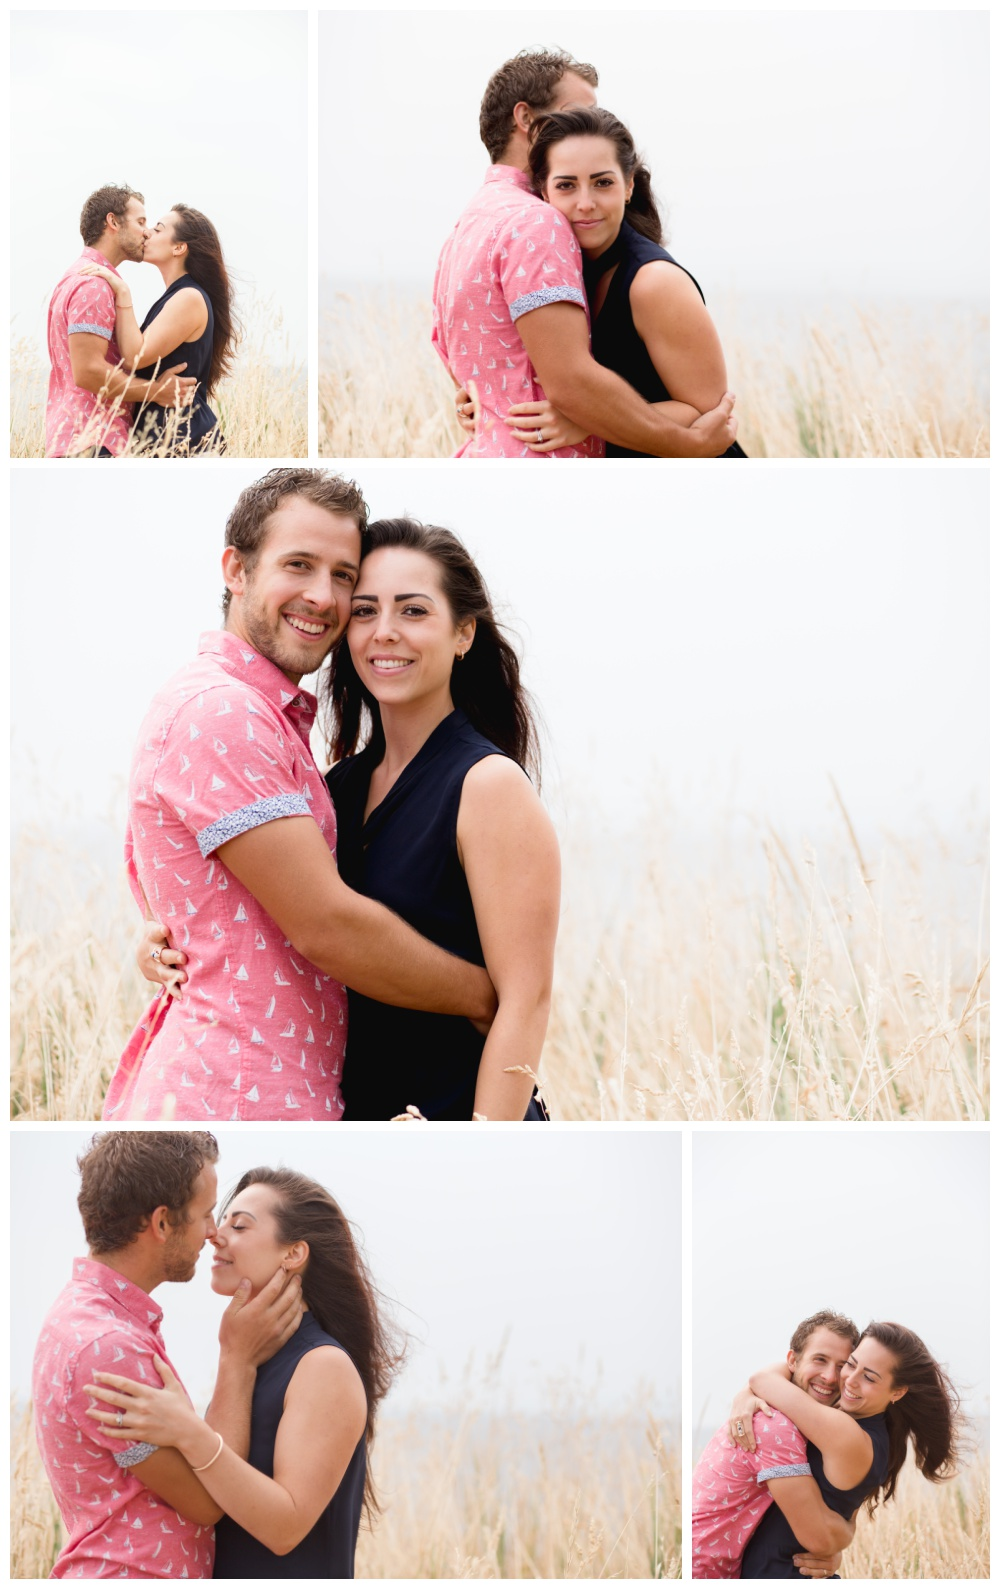 Sweet couples photos in long dry grass on the beach